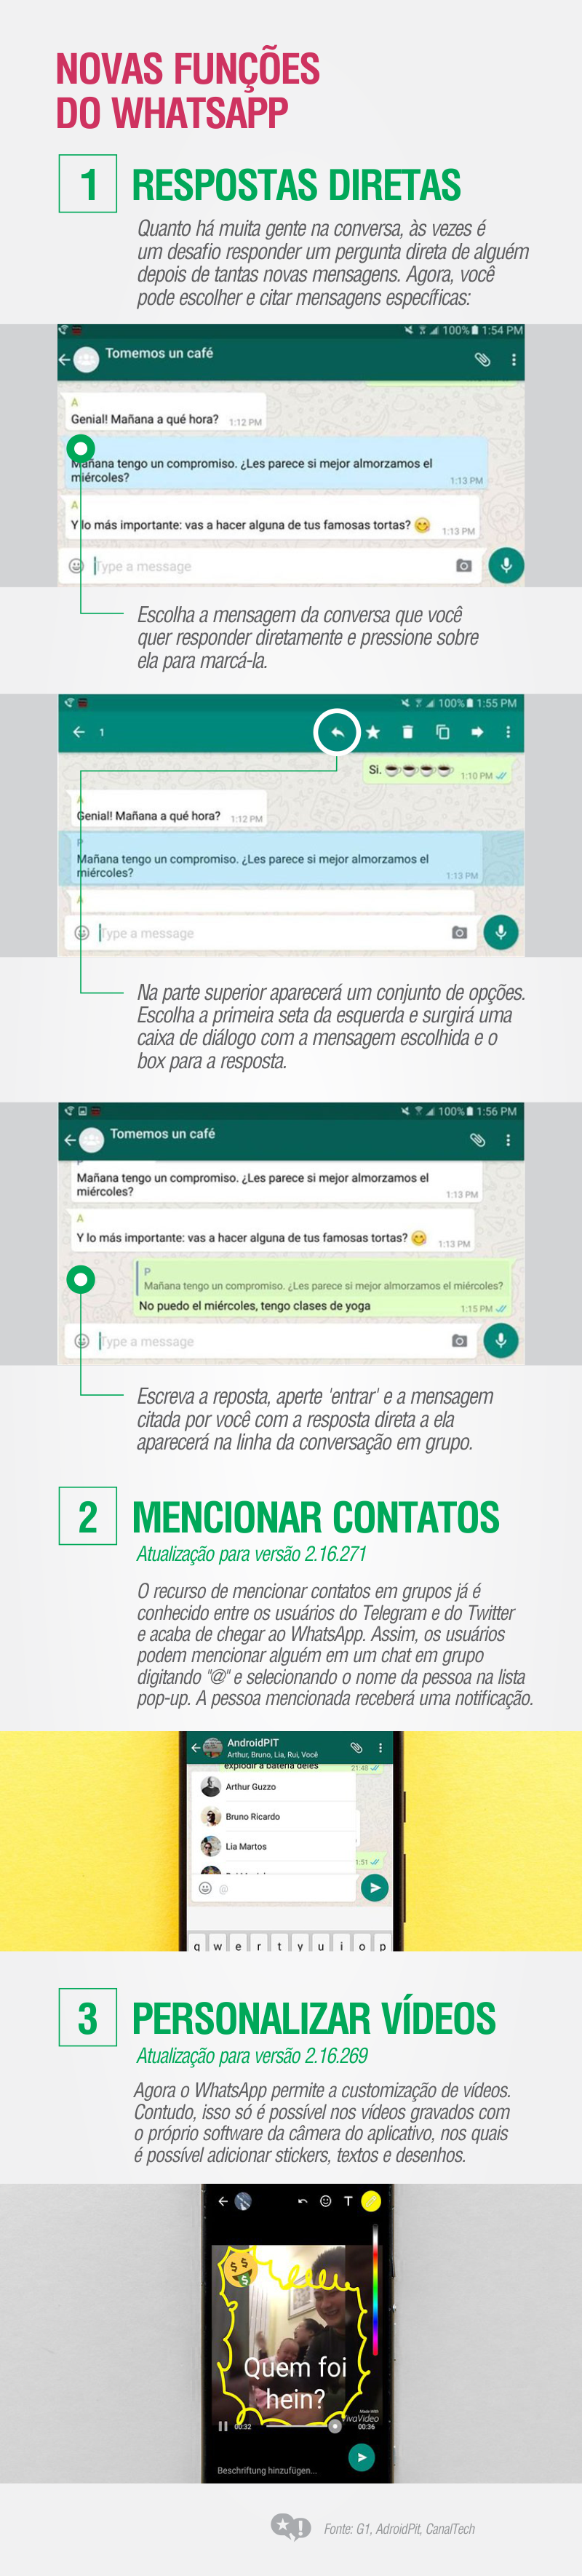 info-whatsapp